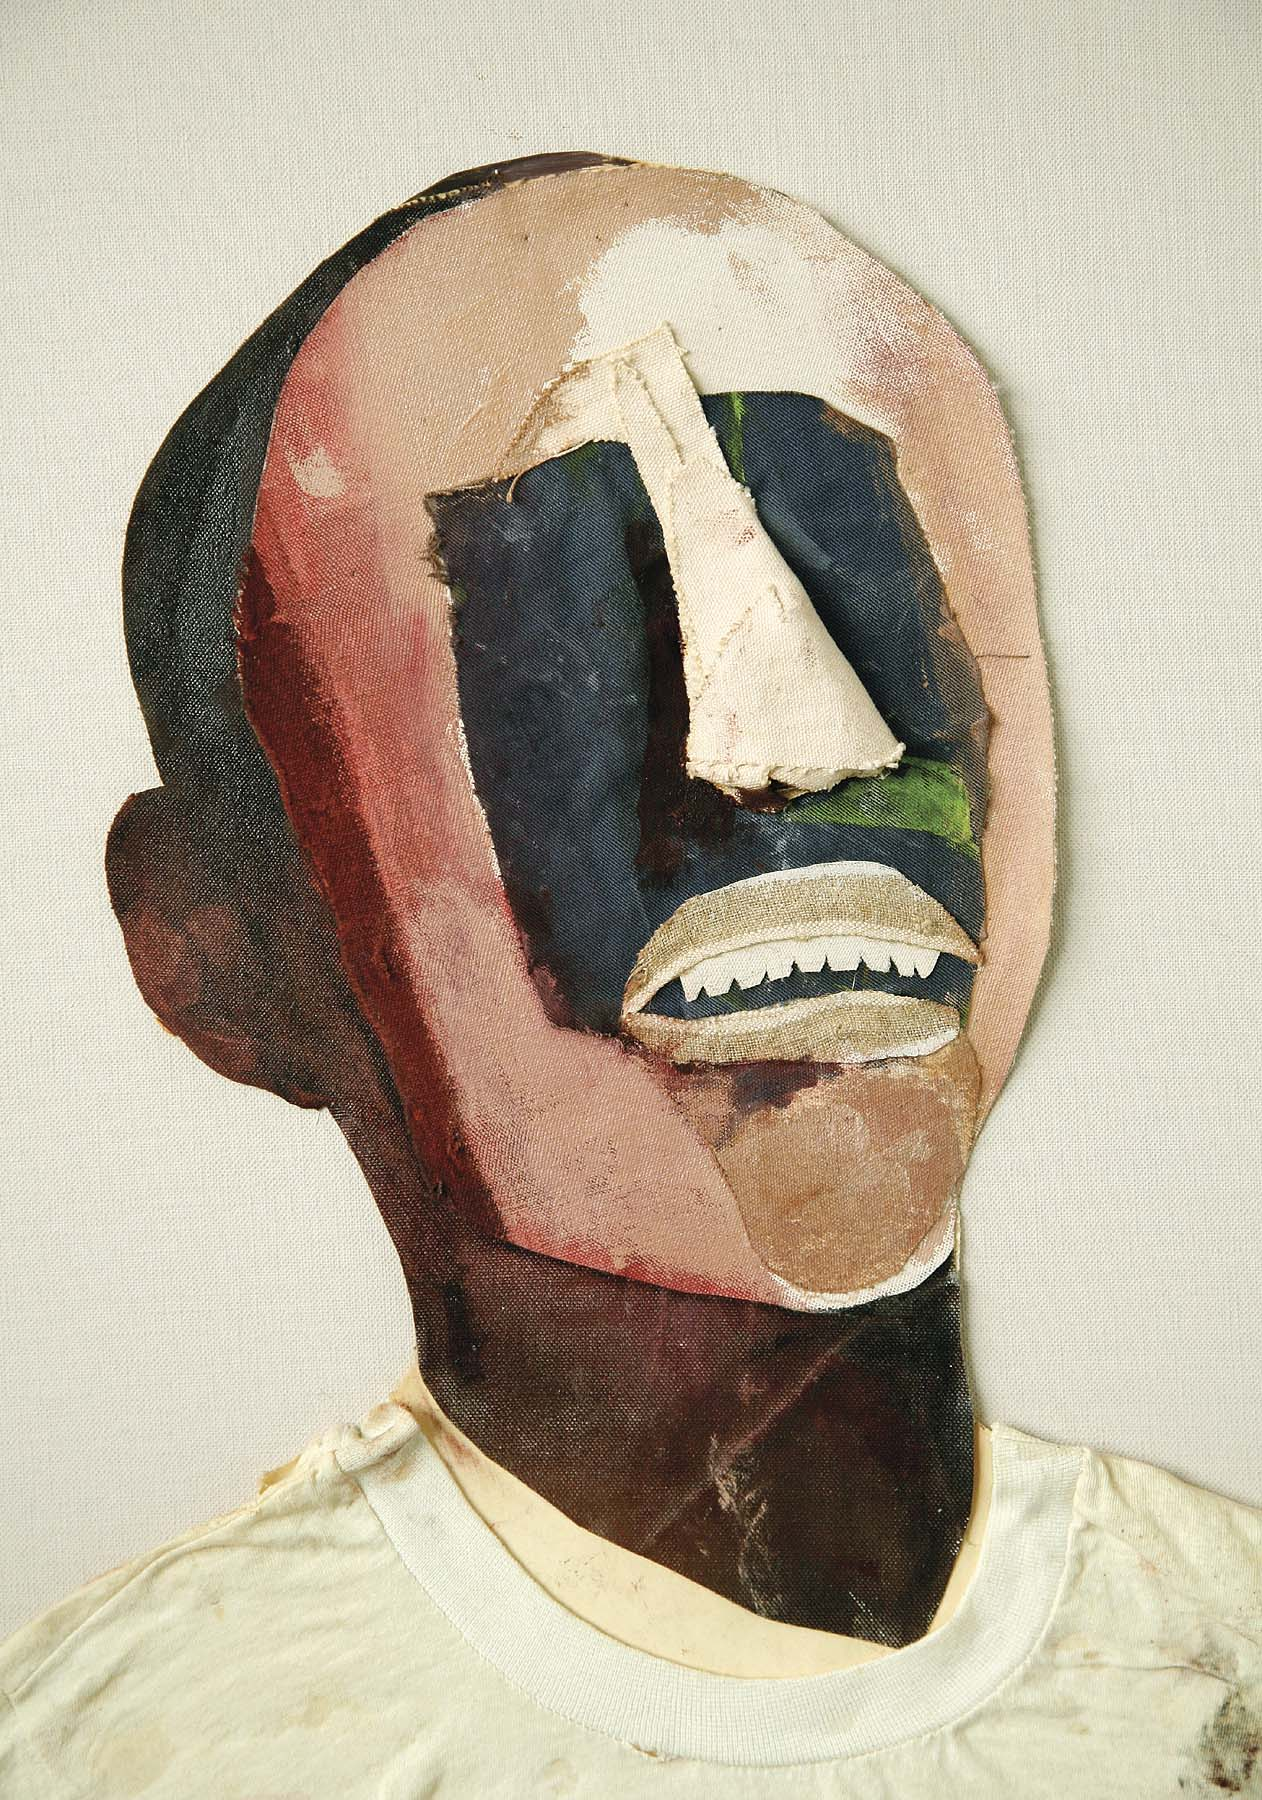 Study for Portrait of Oppression (Homage to Black South Africans)  (Detail),   1985 oil and collage on canvas 44 x 28""